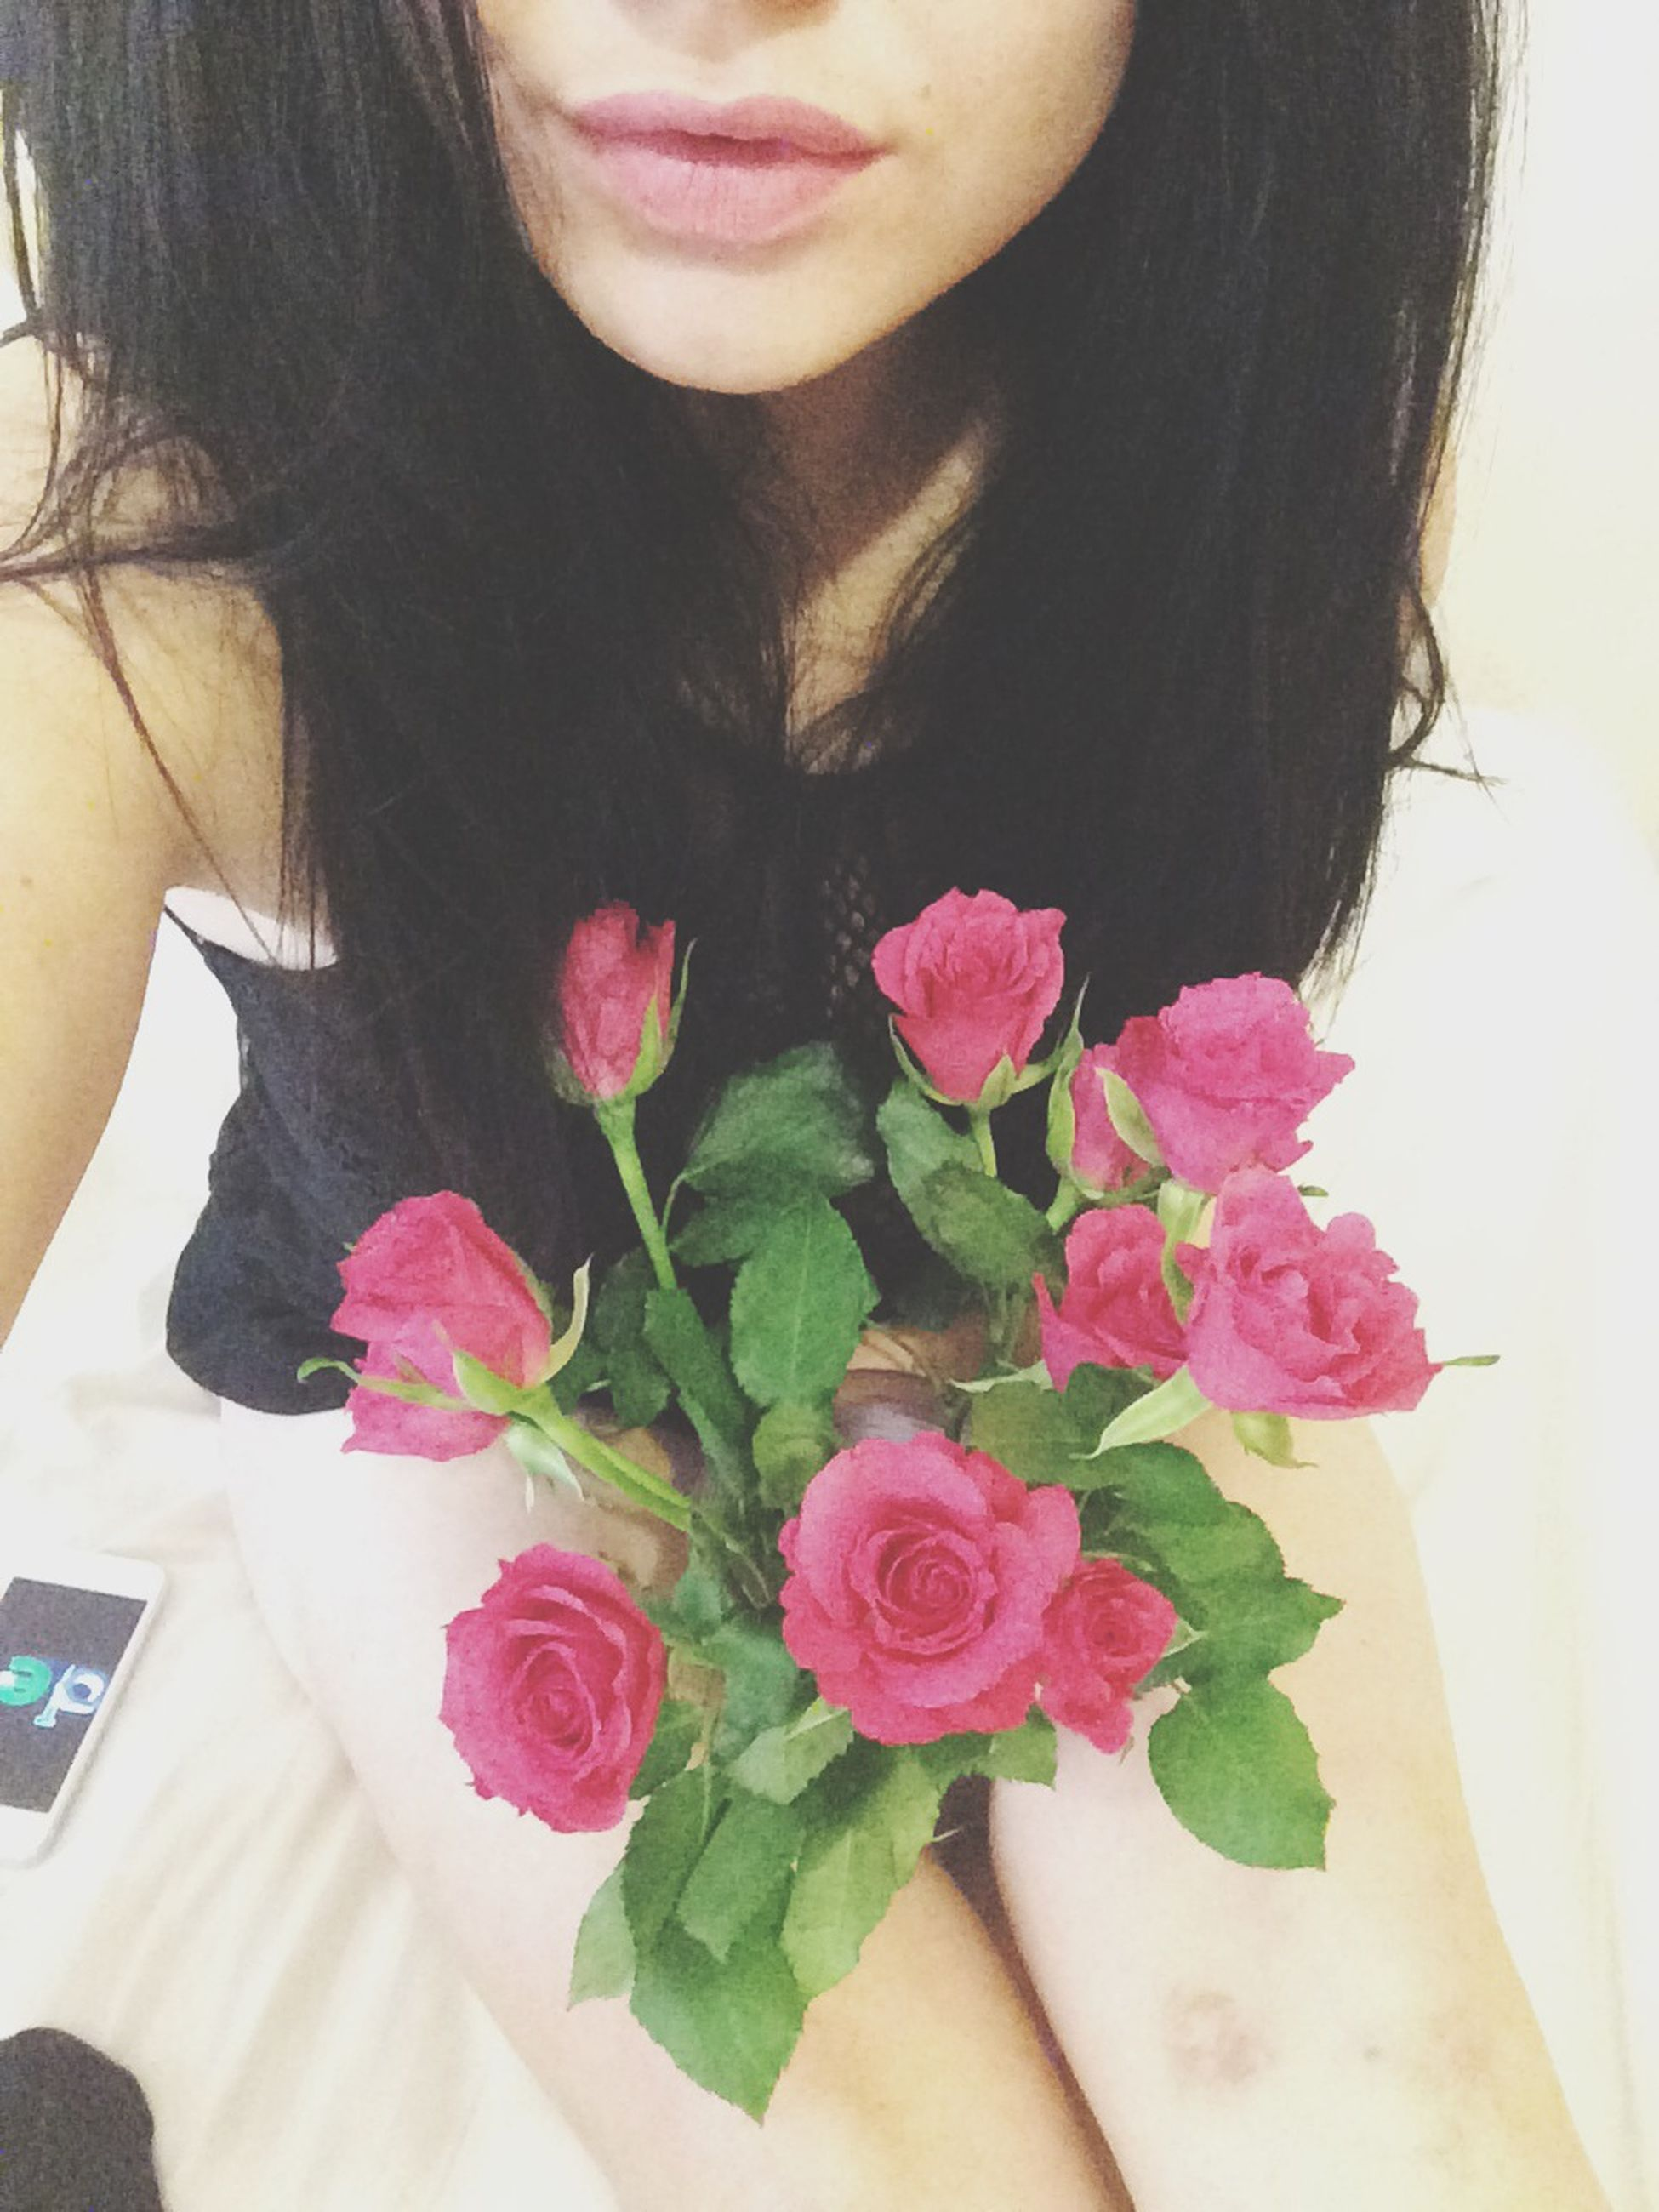 flower, indoors, lifestyles, young women, young adult, freshness, person, leisure activity, pink color, front view, fragility, bouquet, red, holding, long hair